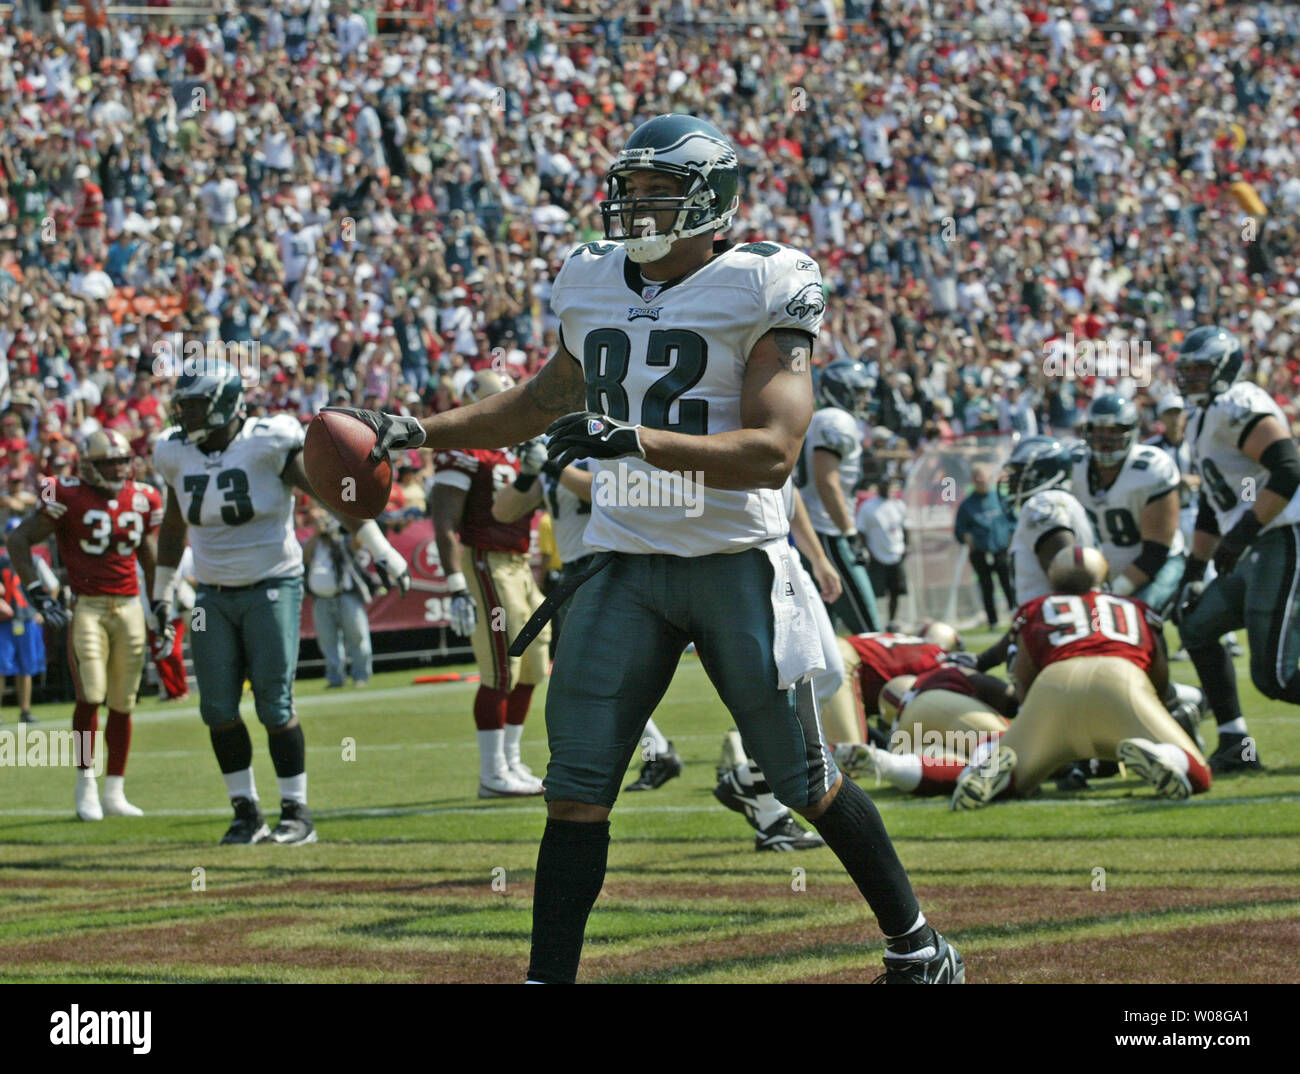 Philadelphia Eagles L.J. Smith (82) celebrates in the endzone  with a Donovan McNabb pass for a TD in the first quarter against the San Francisco 49ers at Monster Park in San Francisco on September 24,  2006.  The Eagles defeated the 49ers 38-24. (UPI Photo/Bruce Gordon) - Stock Image